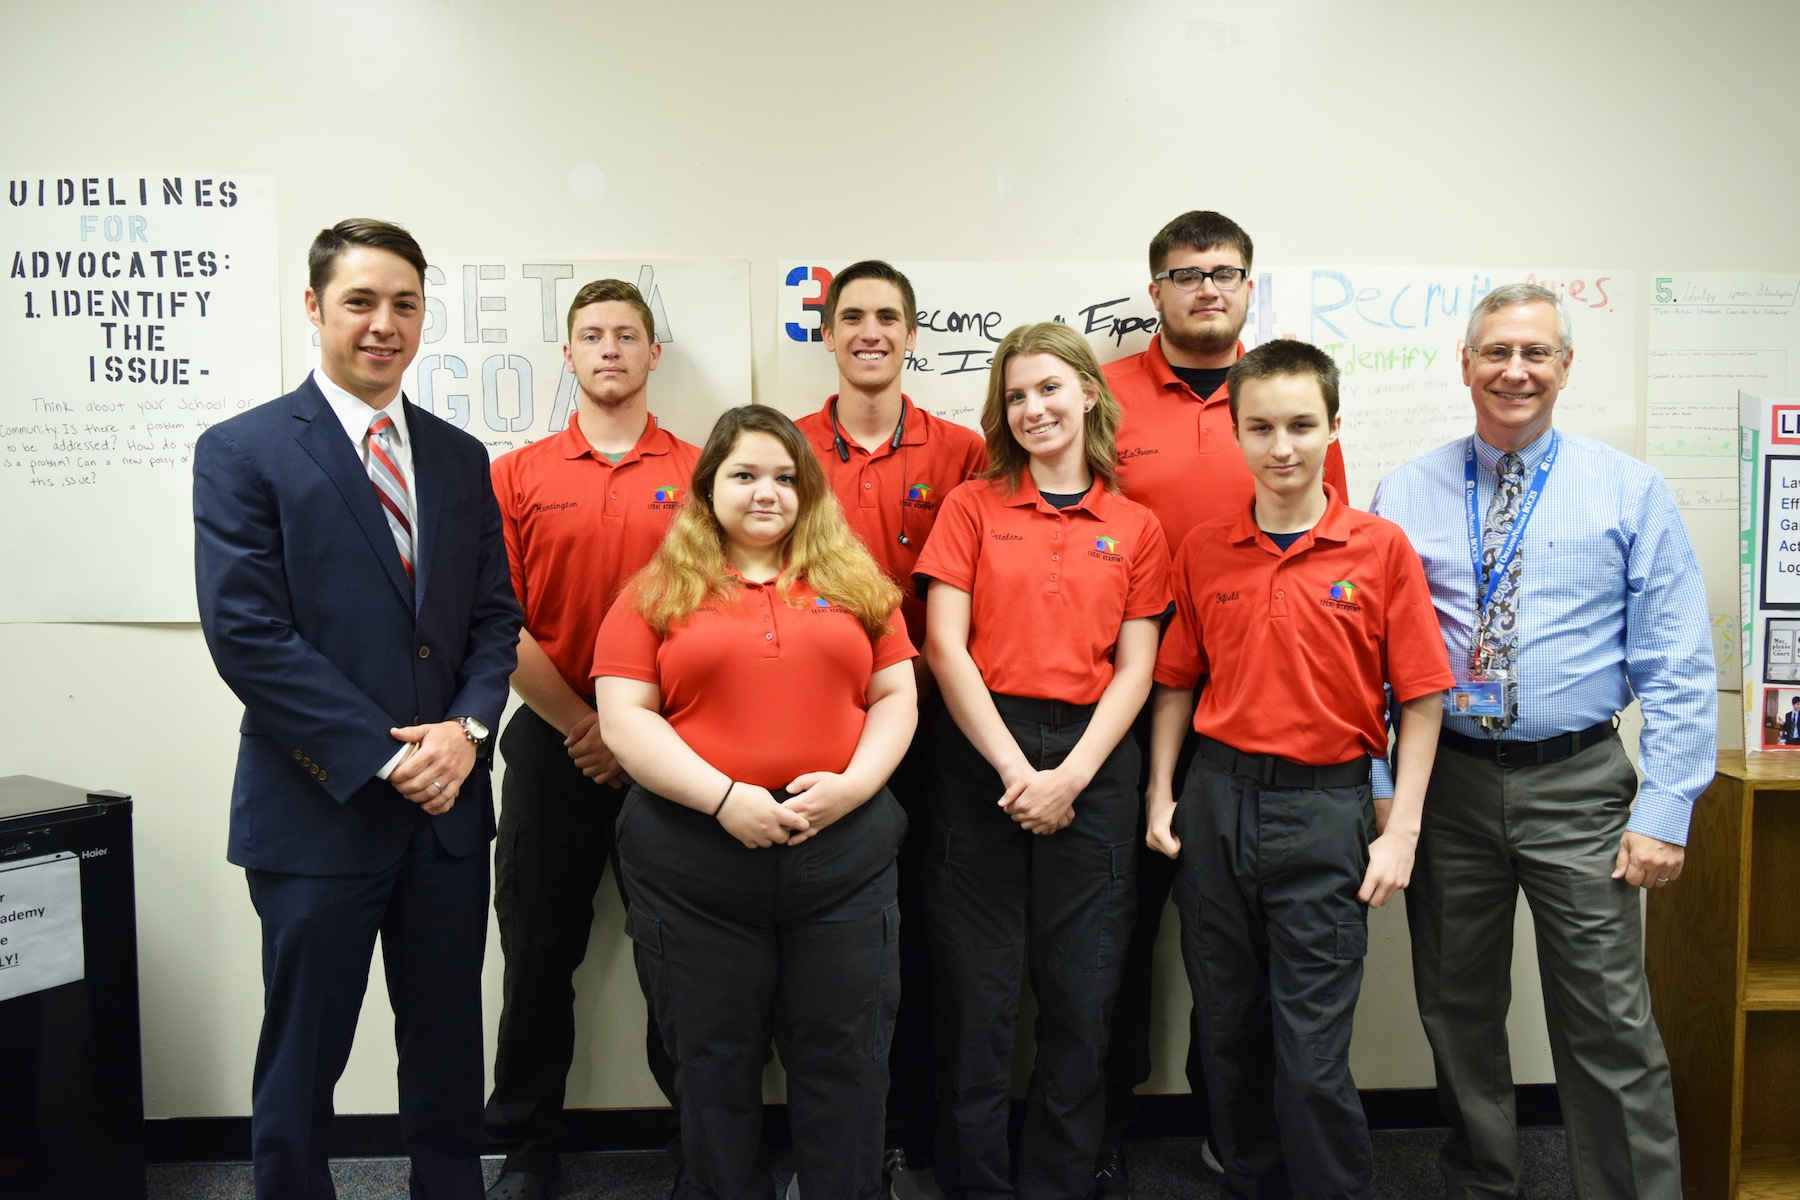 From left, John Granchelli, Assistant District Attorney - Niagara County District Attorney's Office. Back row, from left, Jonathan Huntington (Royalton-Hartland), Brennan Stevens (Lockport), Brandon LaForme (Royalton-Hartland). Front row, from left, Megan Smit (Niagara-Wheatfield), Grace Catalano (Newfane) and Chase Fifield (Lockport). Teacher Gene Newman, far right.